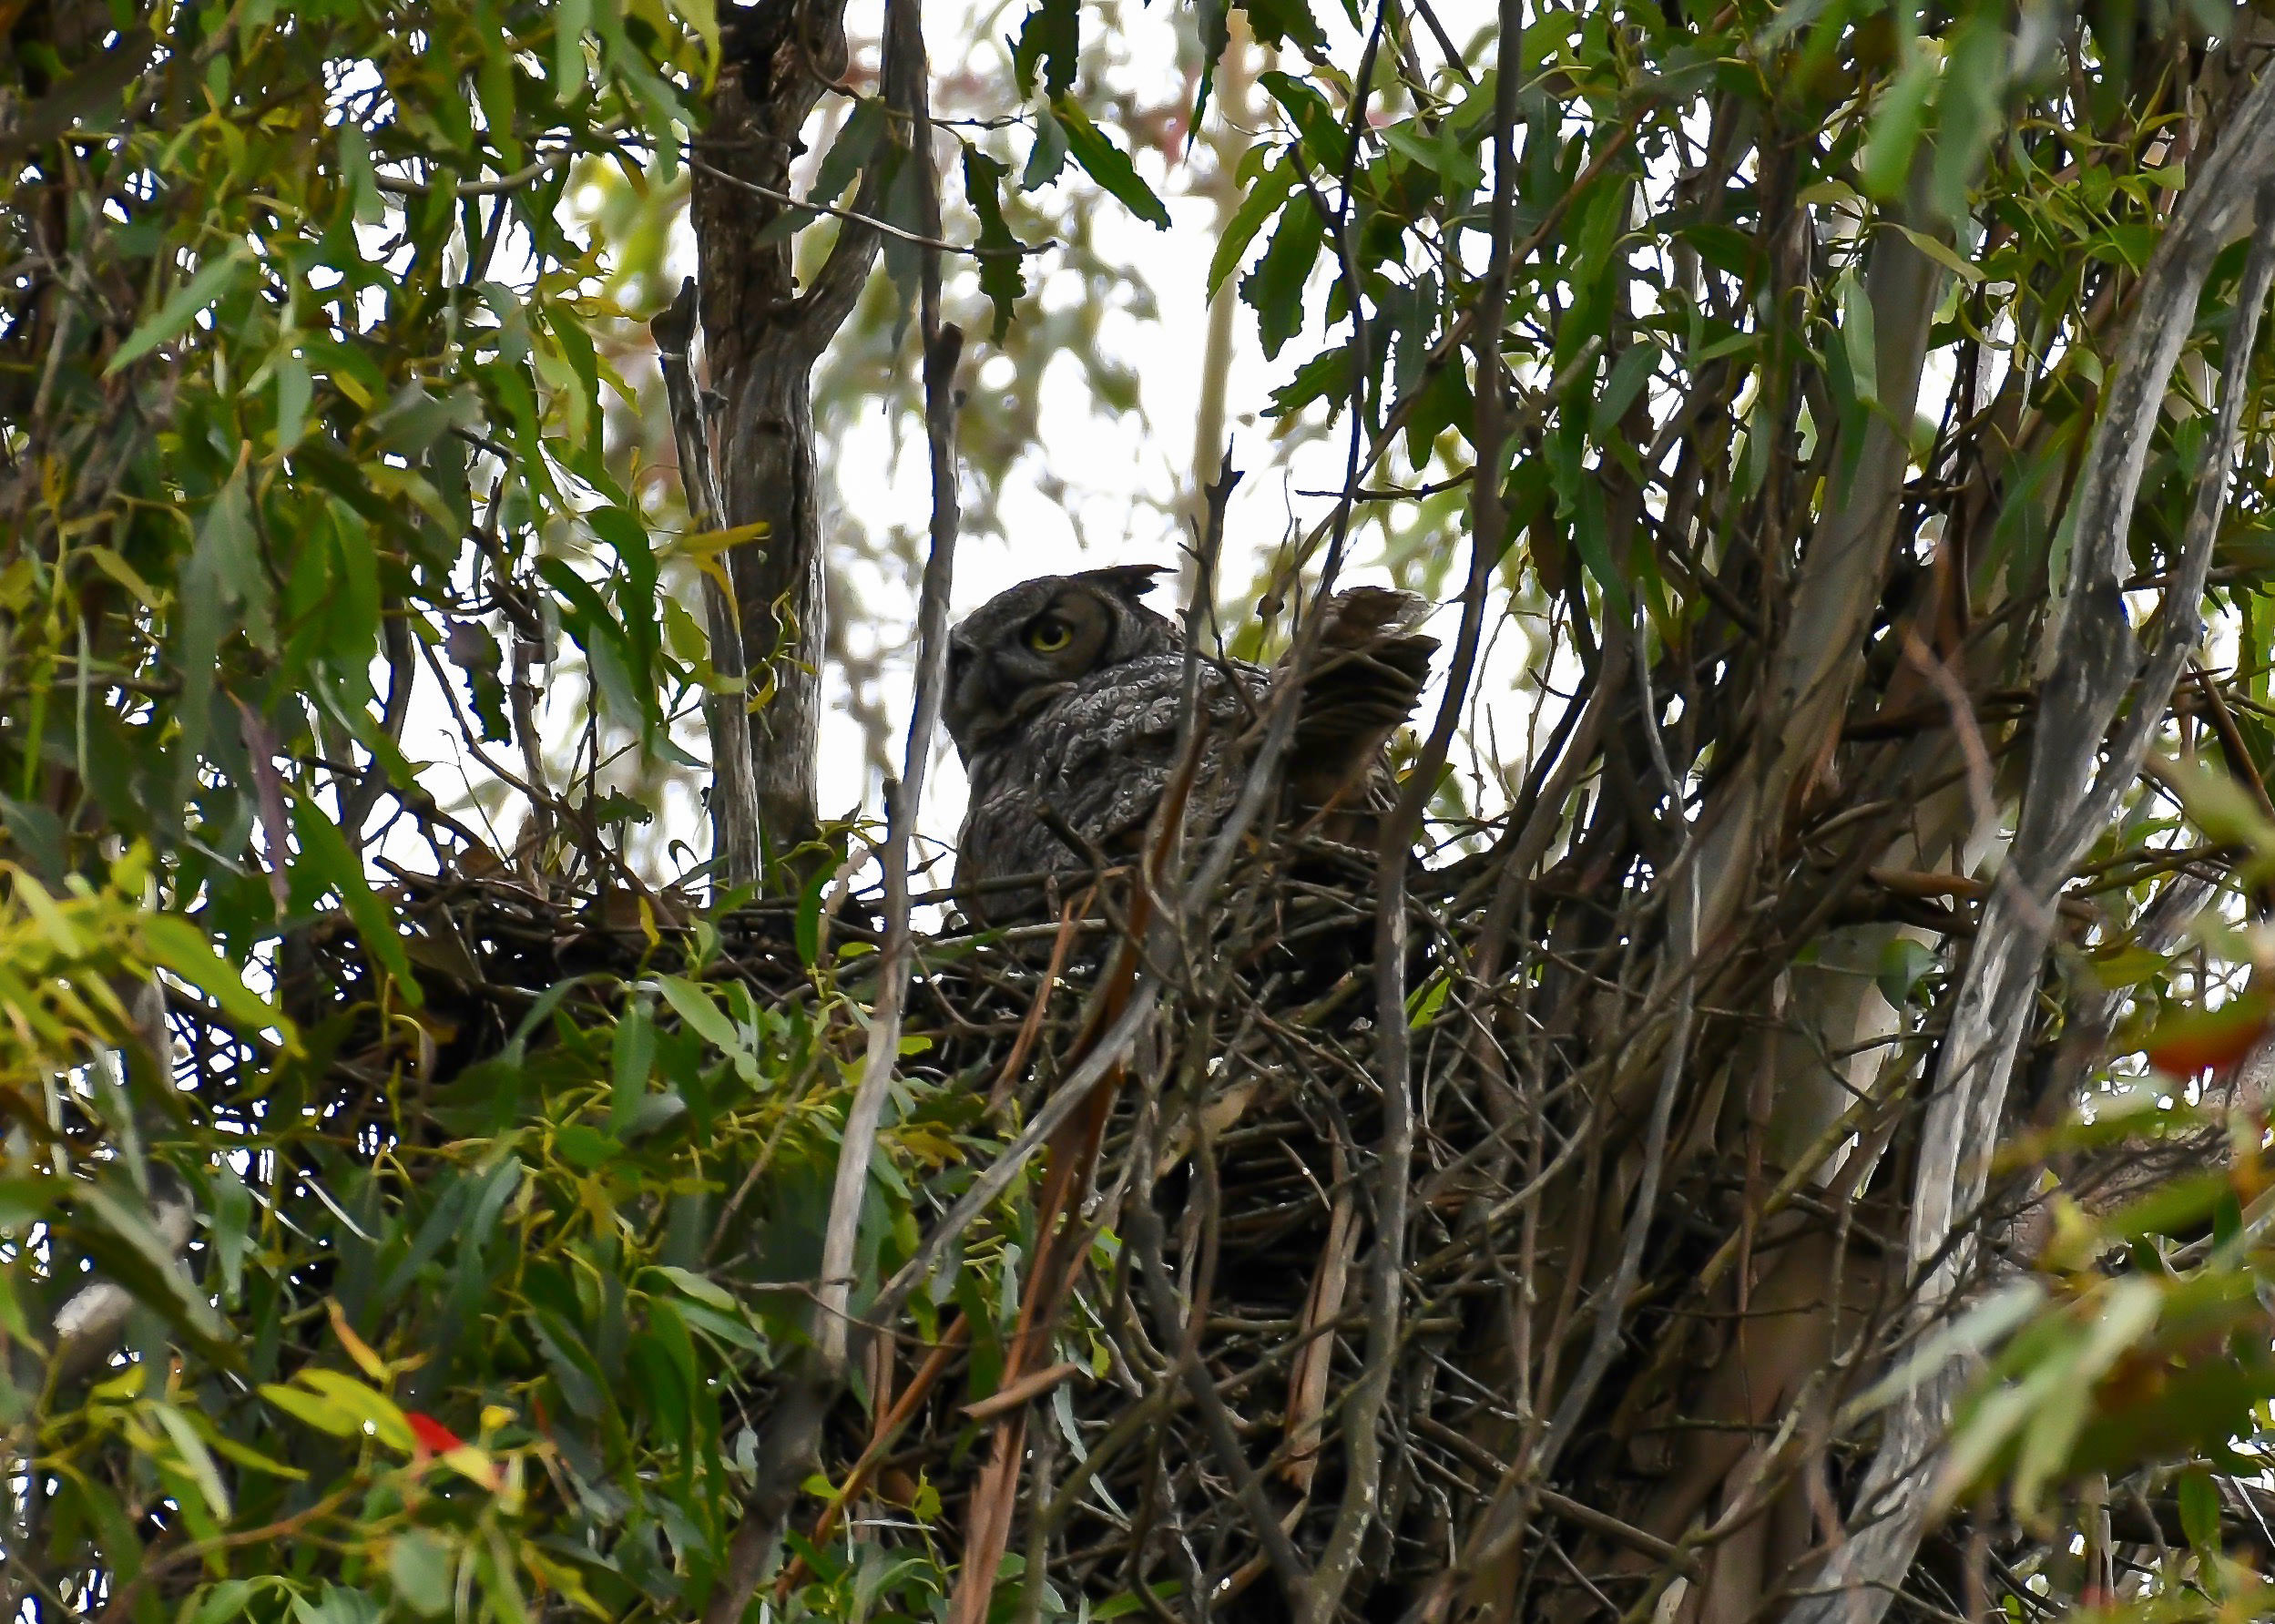 A mother Great Horned Owl with baby owls in nest, Petaluma, Sonoma County, California